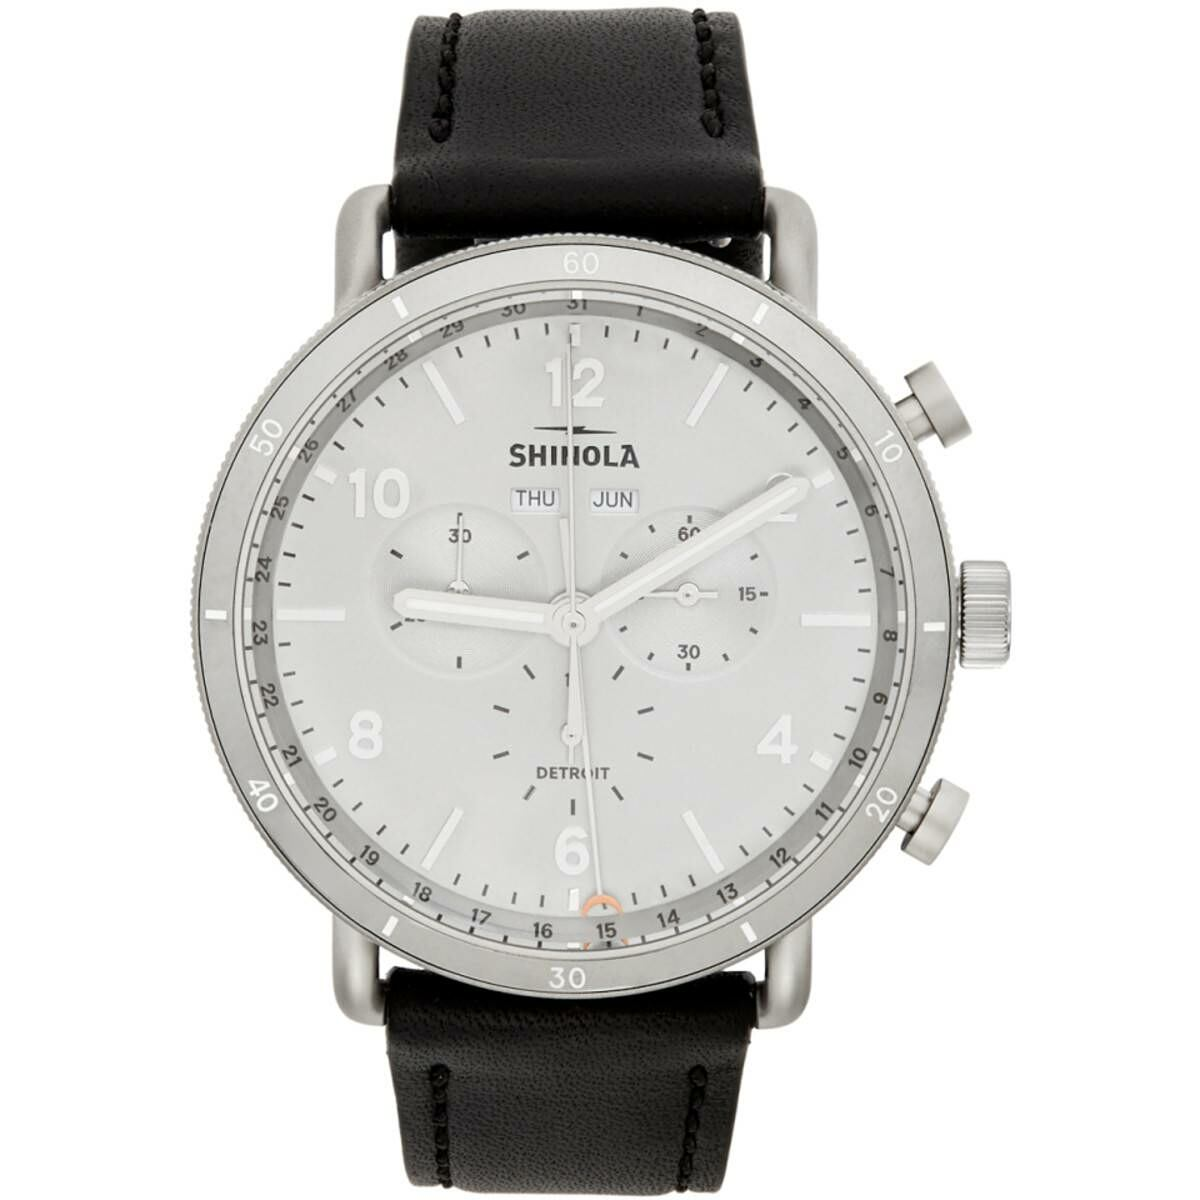 Shinola Silver and Black The Canfield Sport 45mm Watch Ssense USA MEN Men ACCESSORIES Mens WATCHES